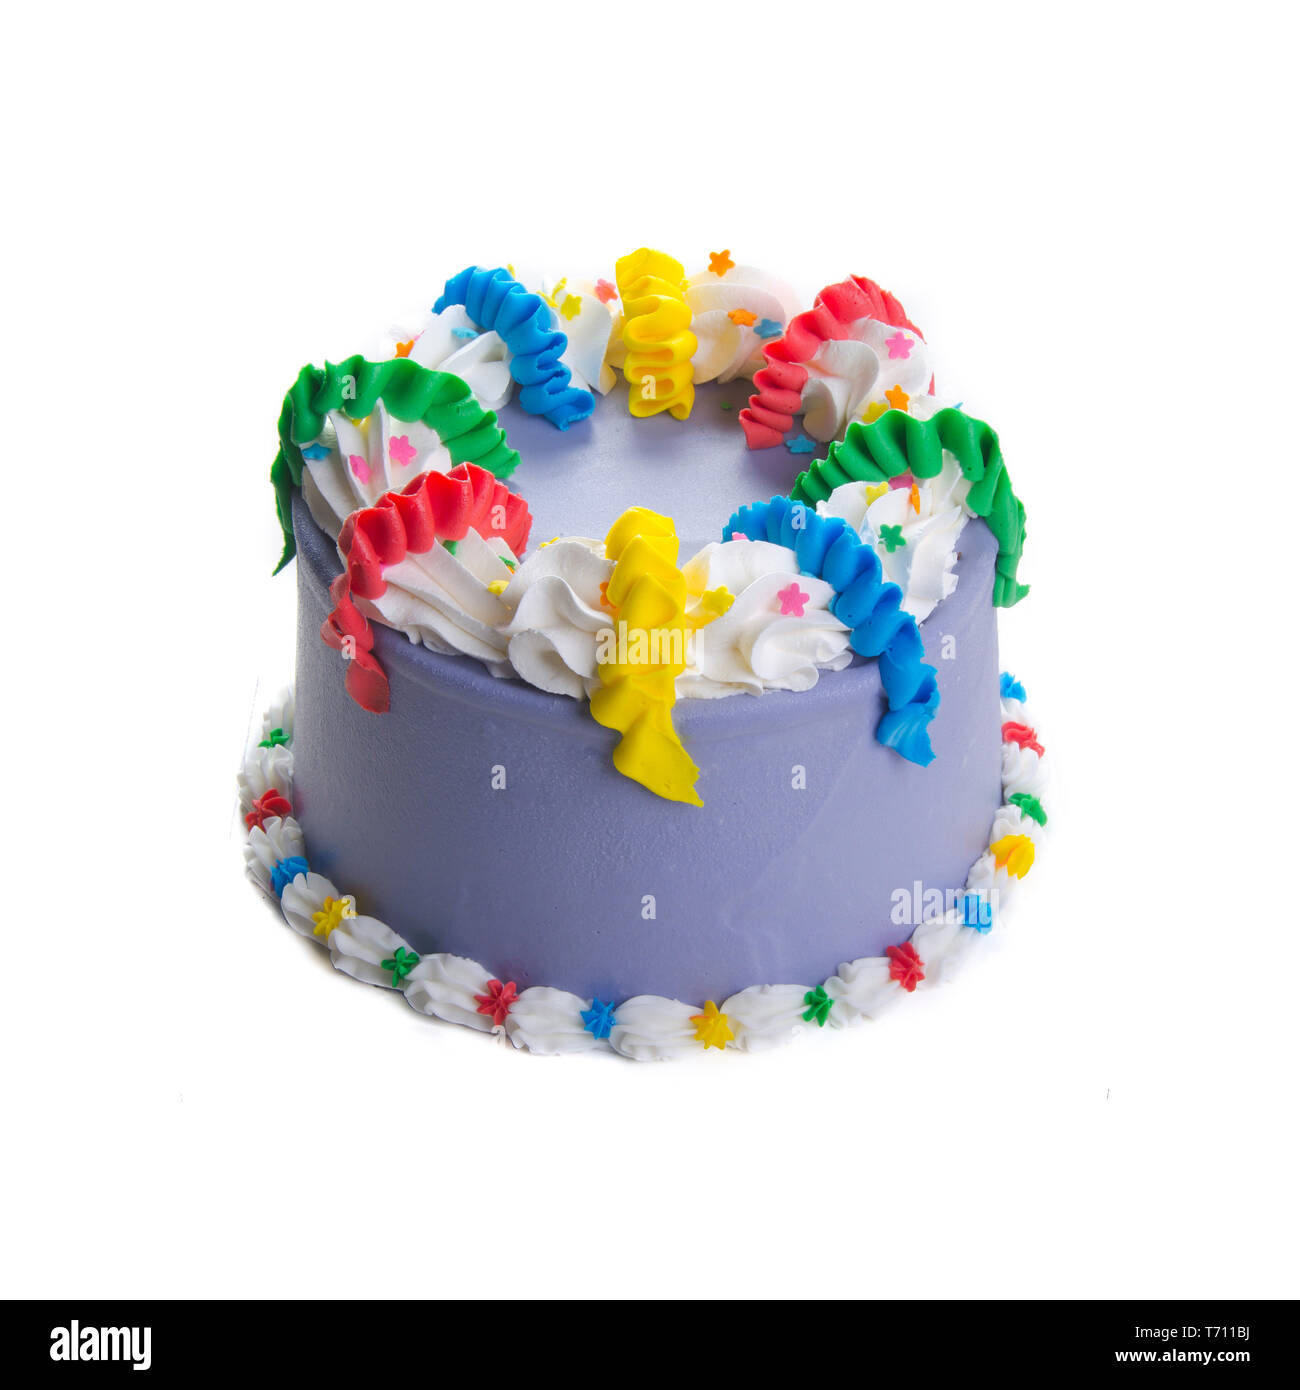 Surprising Cake Or Ice Cream Birthday Cake On A Background Stock Photo Funny Birthday Cards Online Sheoxdamsfinfo